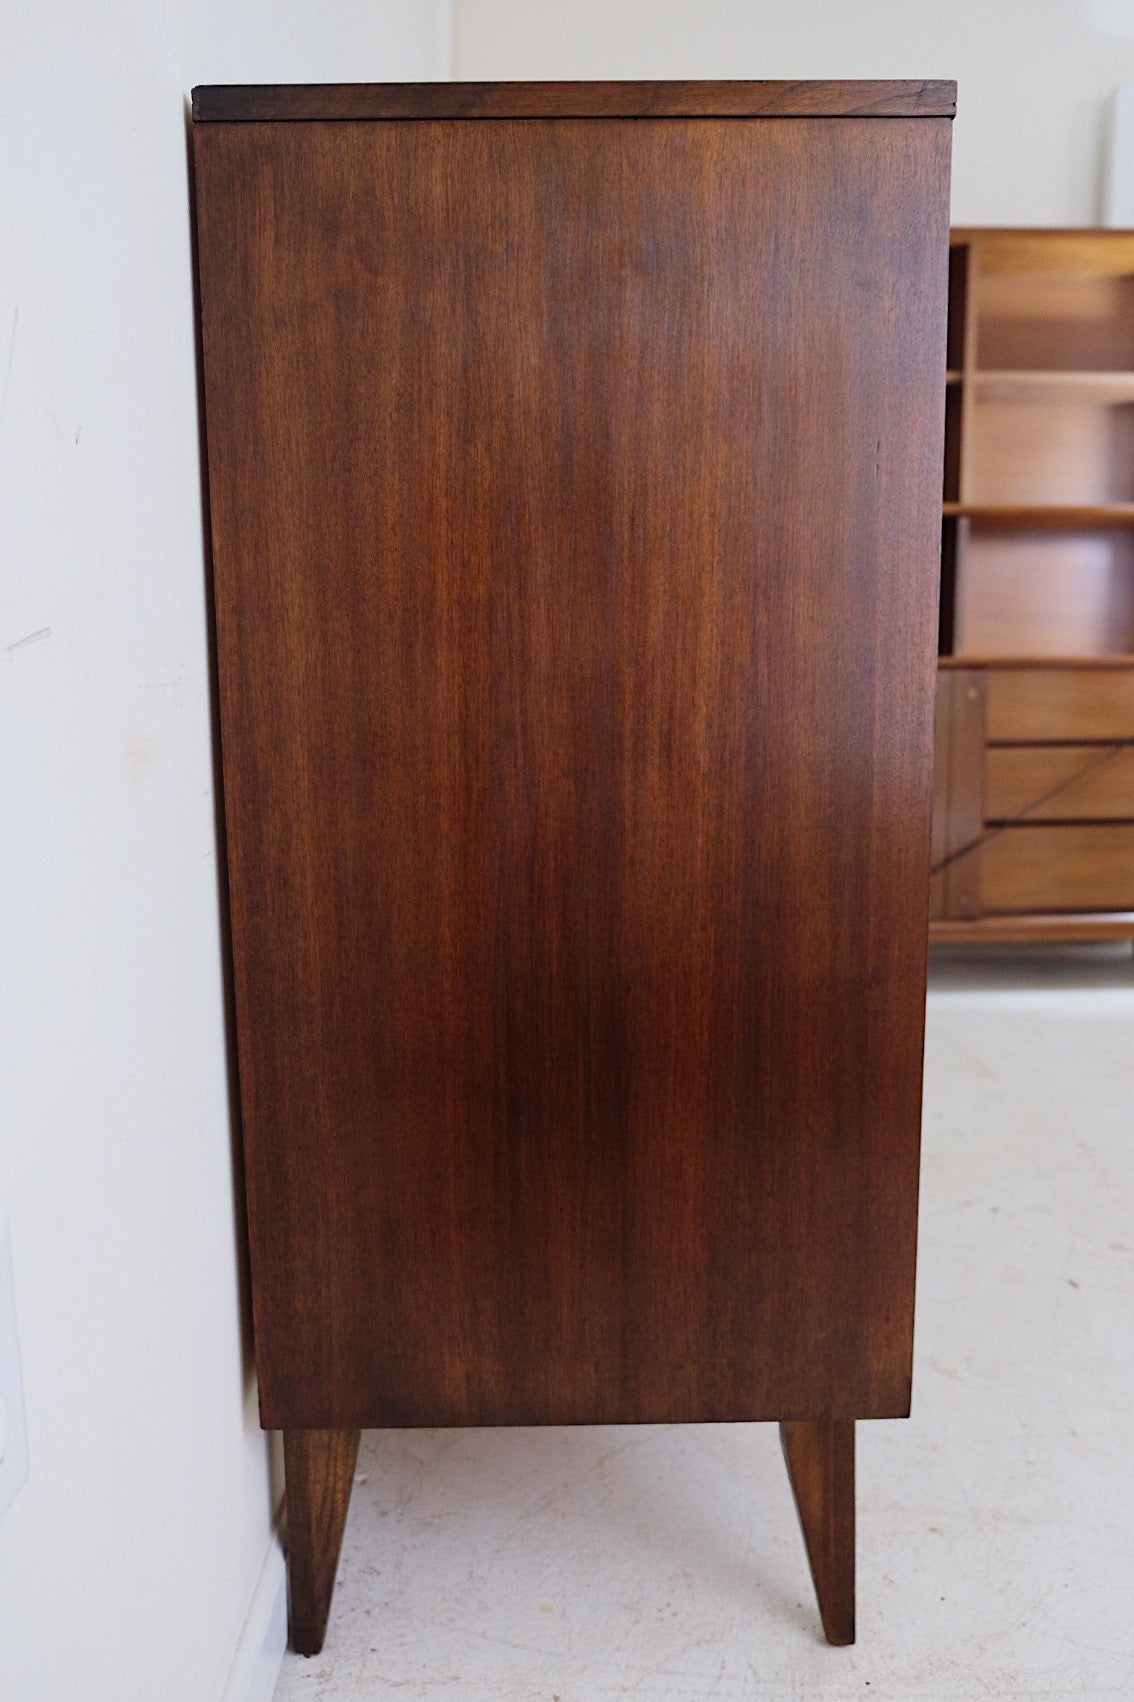 Basic Witz Tall Carved Wood Framed Beveled Edge Tall Dresser